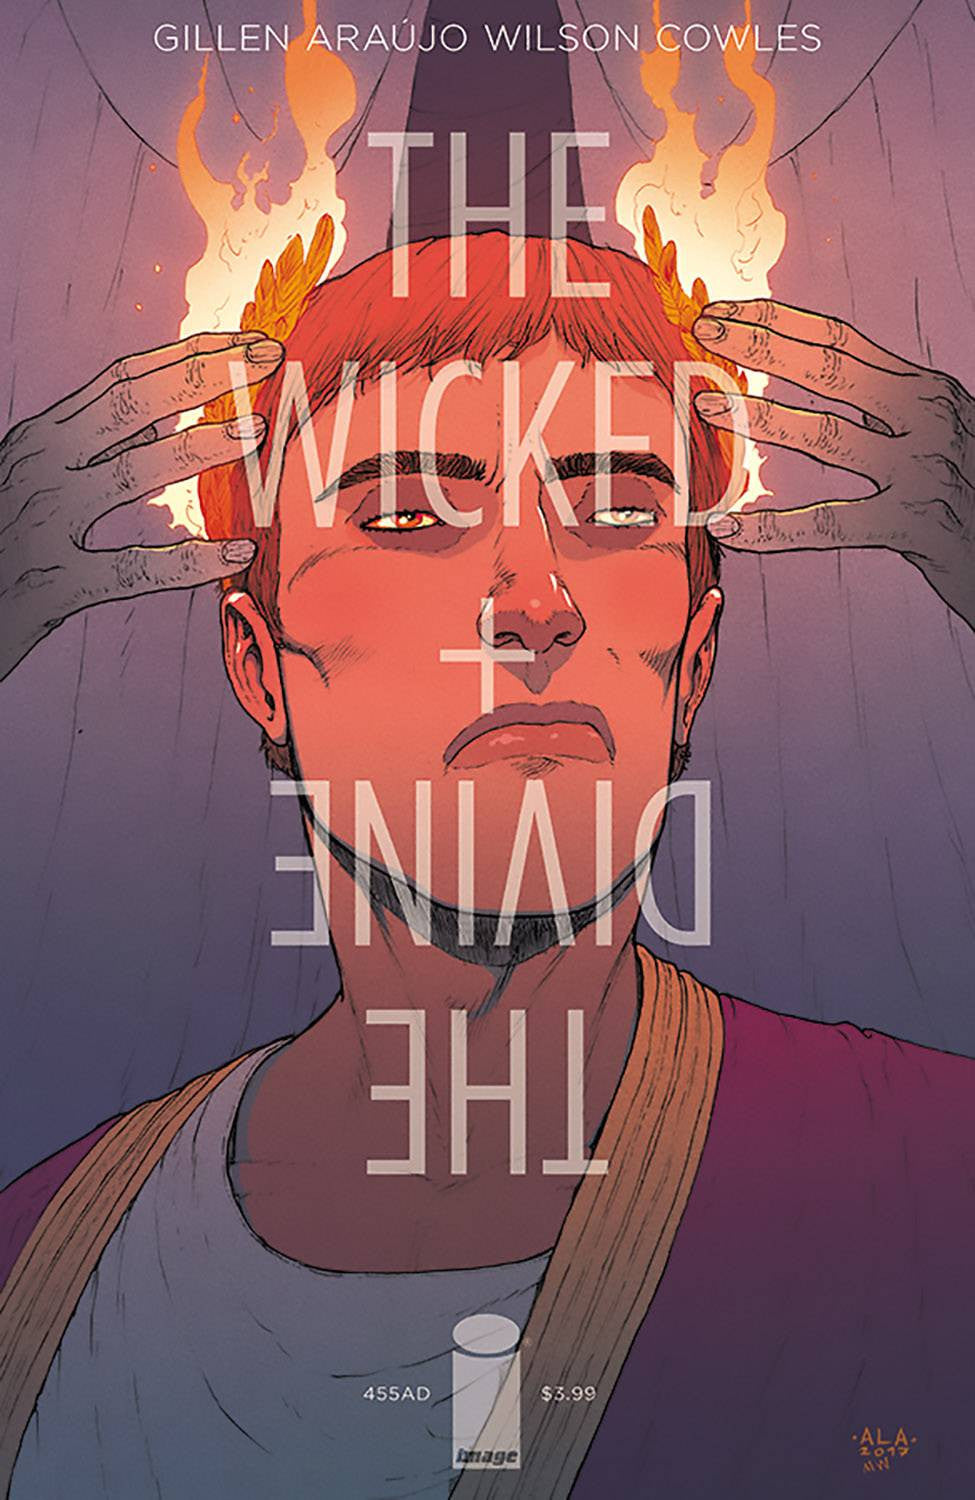 WICKED & DIVINE 455 AD #1 (ONE-SHOT) CVR B ARAUJO